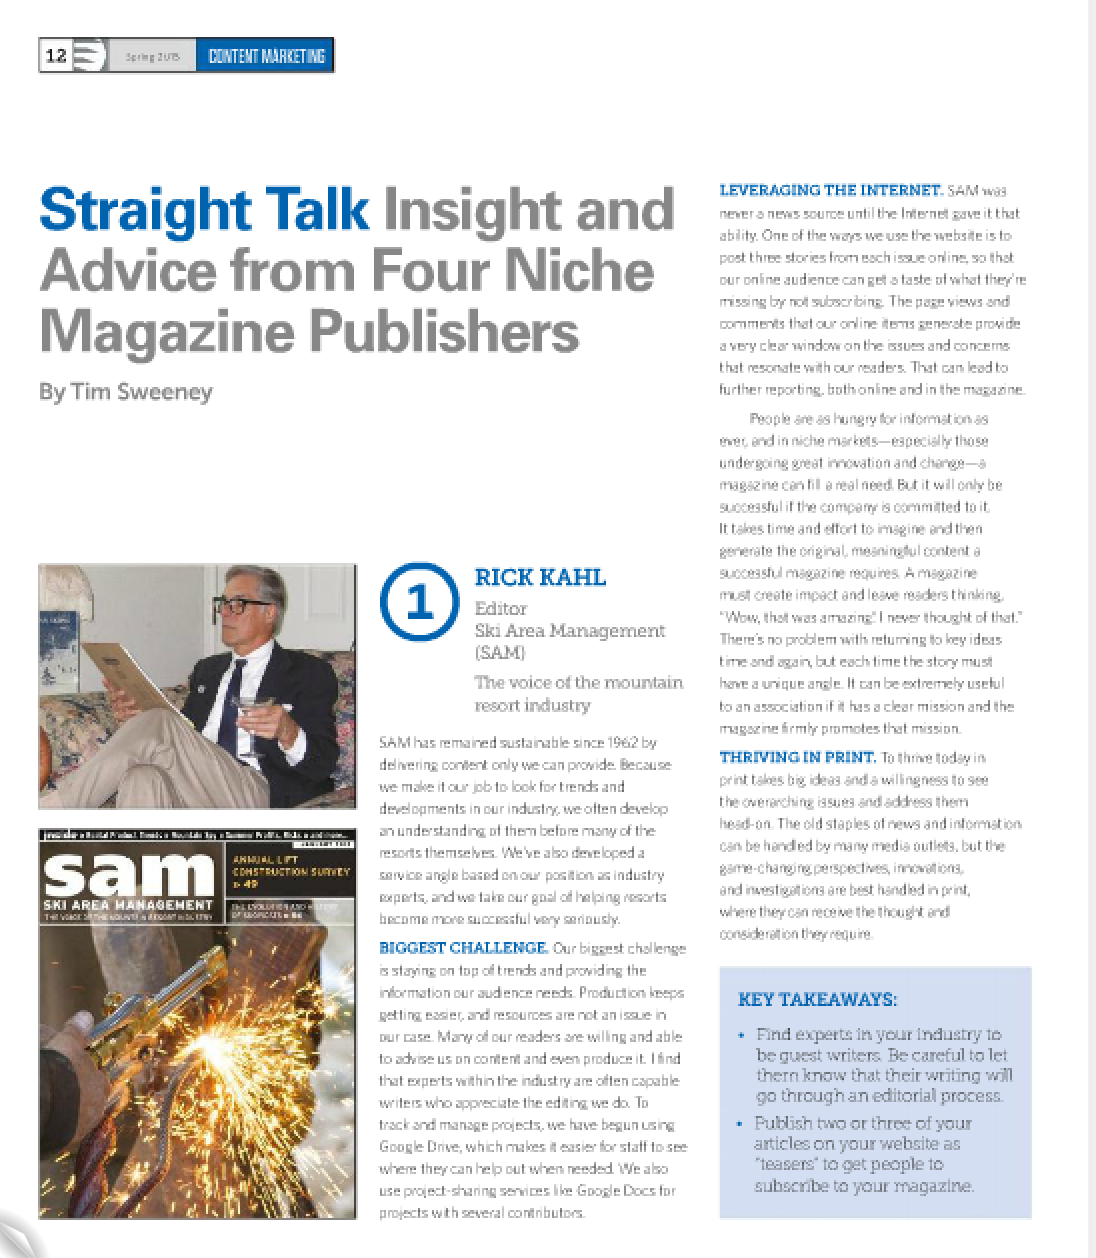 Magazine printing insight and advice